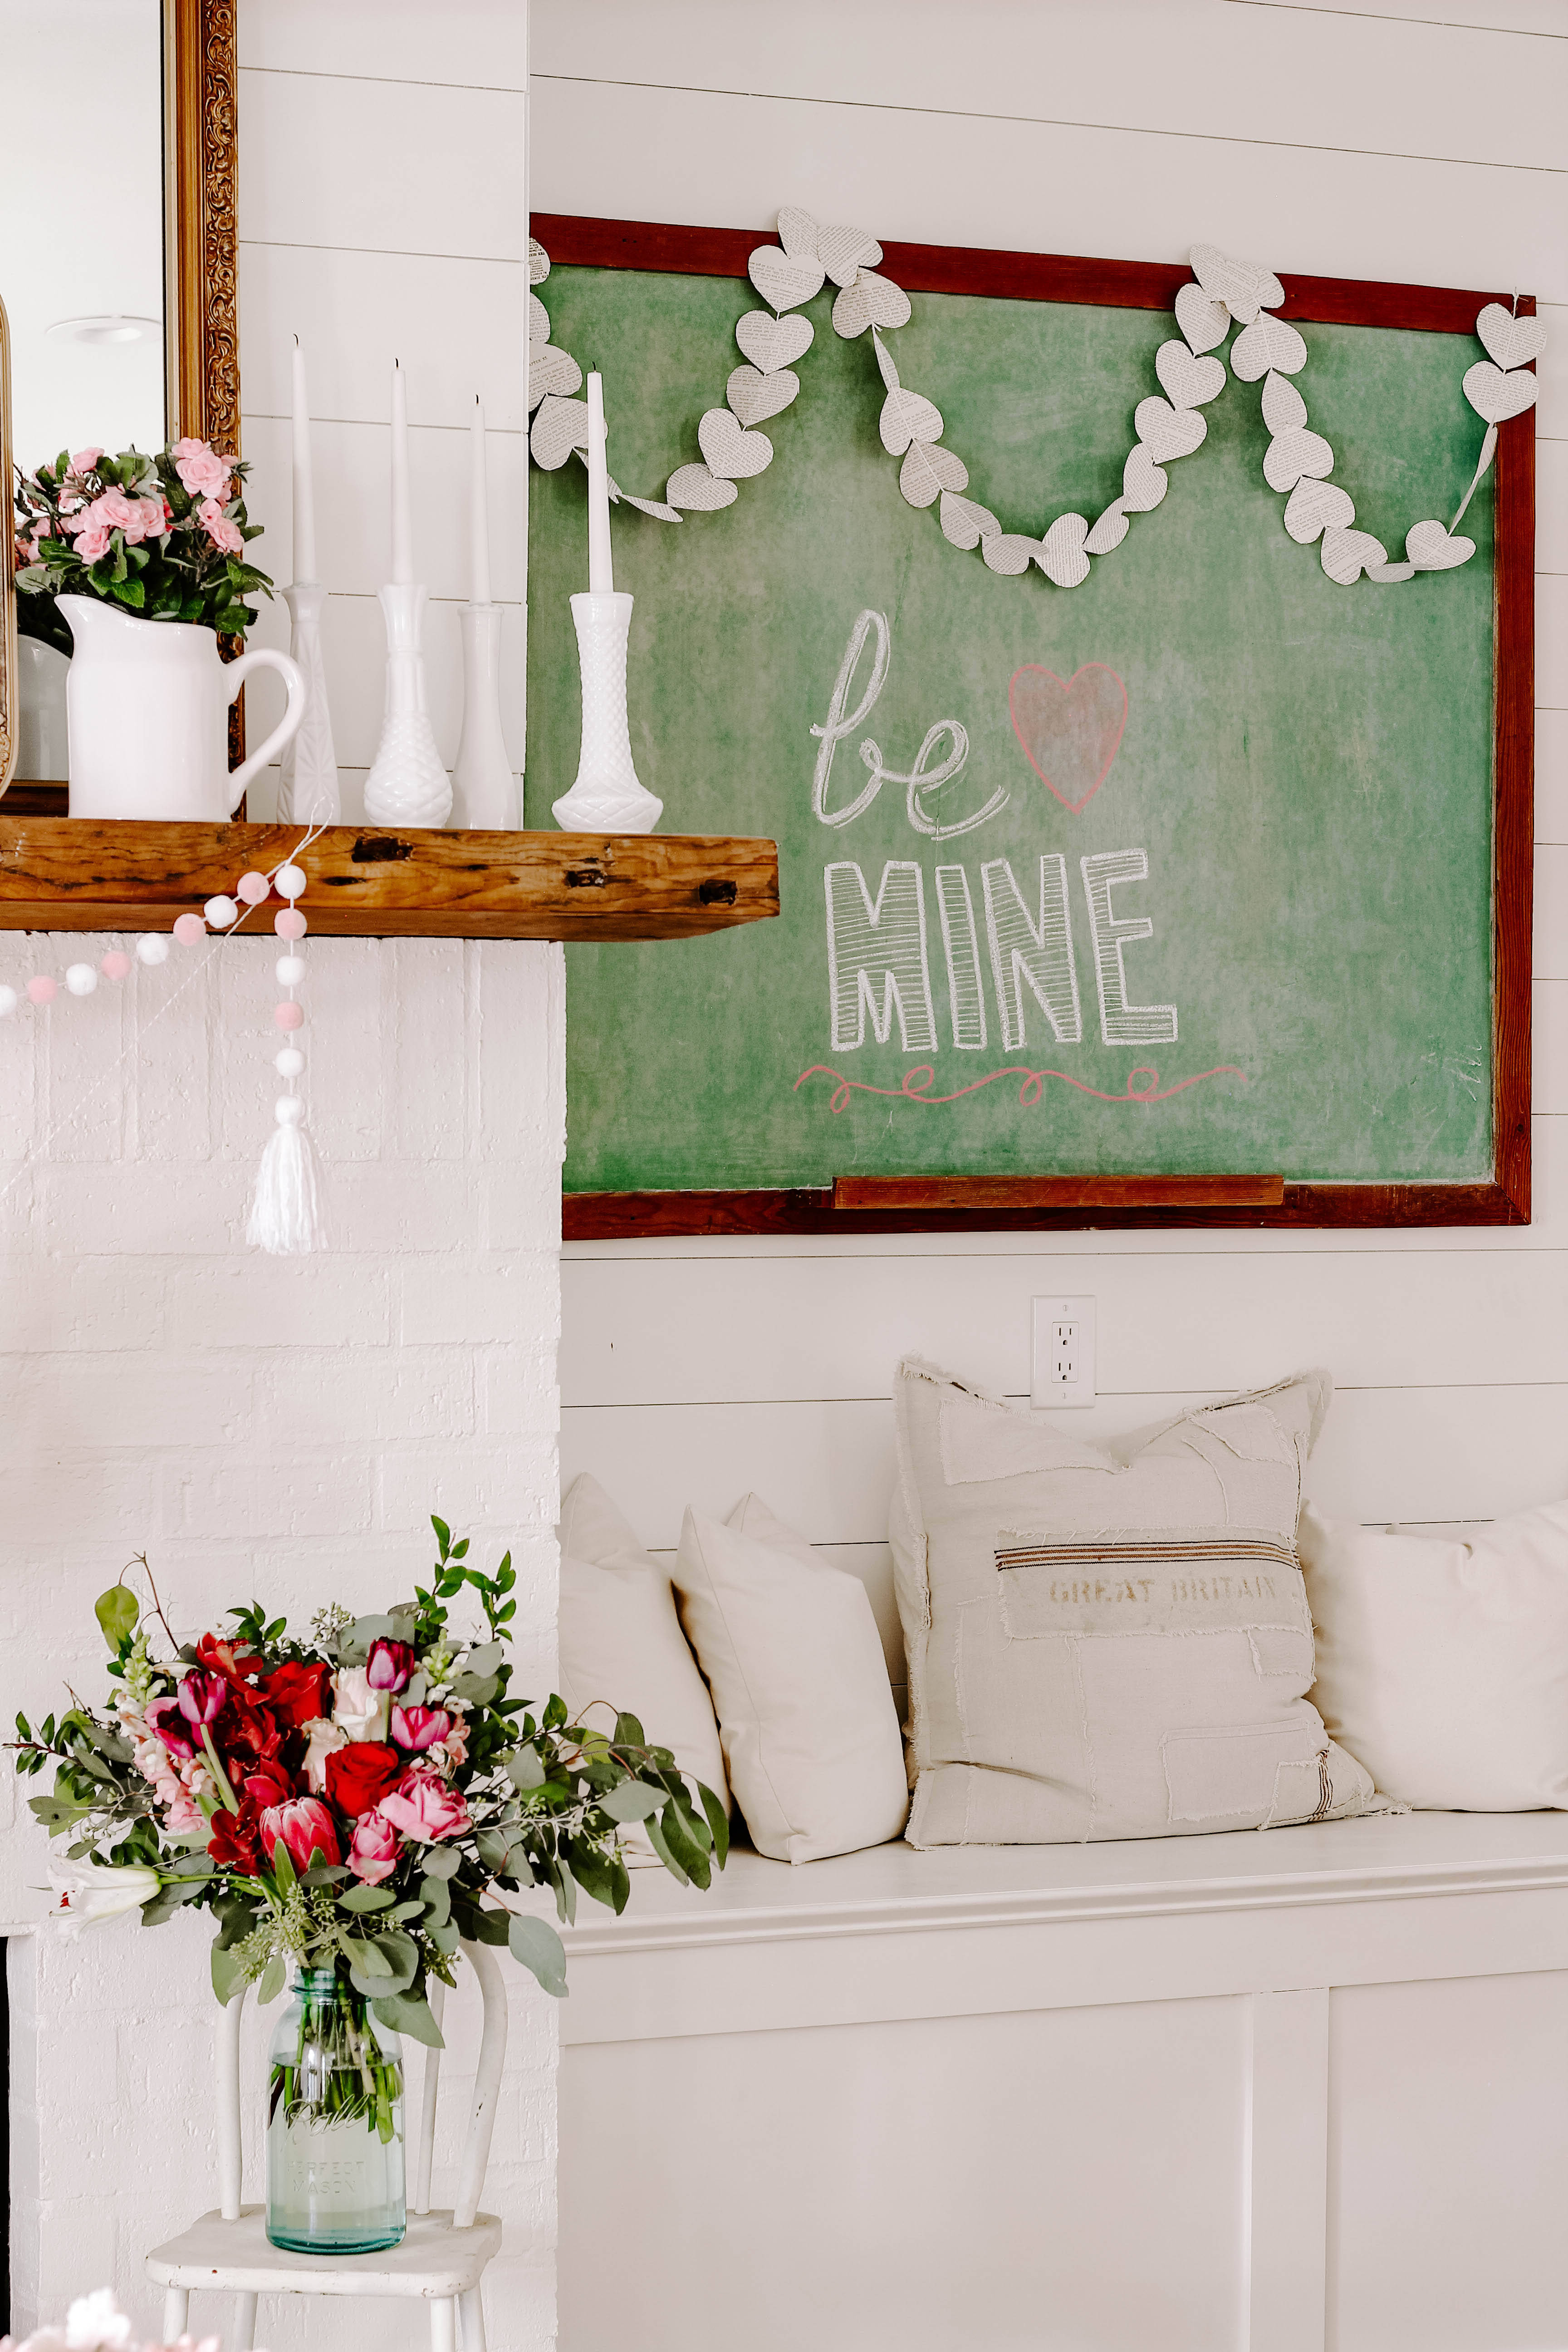 Looking for Valentine inspiration? Be inspired by lots of farmhouse and vintage valentine decor ideas to help you get started.